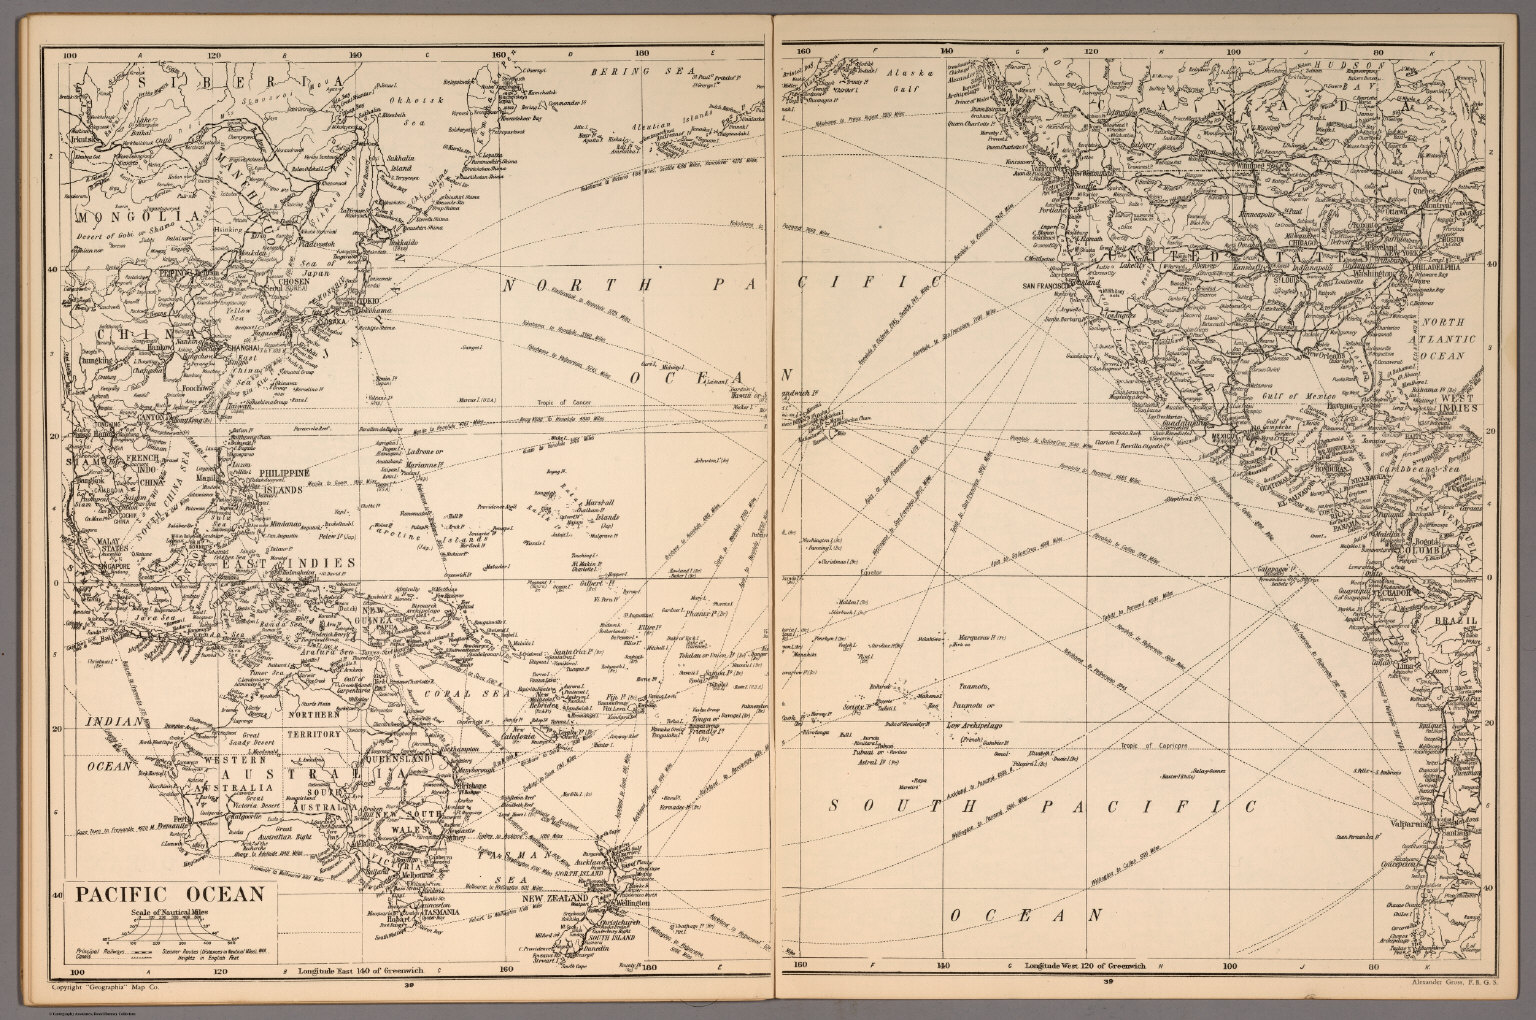 Pacific ocean david rumsey historical map collection view in georeferencer buy print export gumiabroncs Image collections